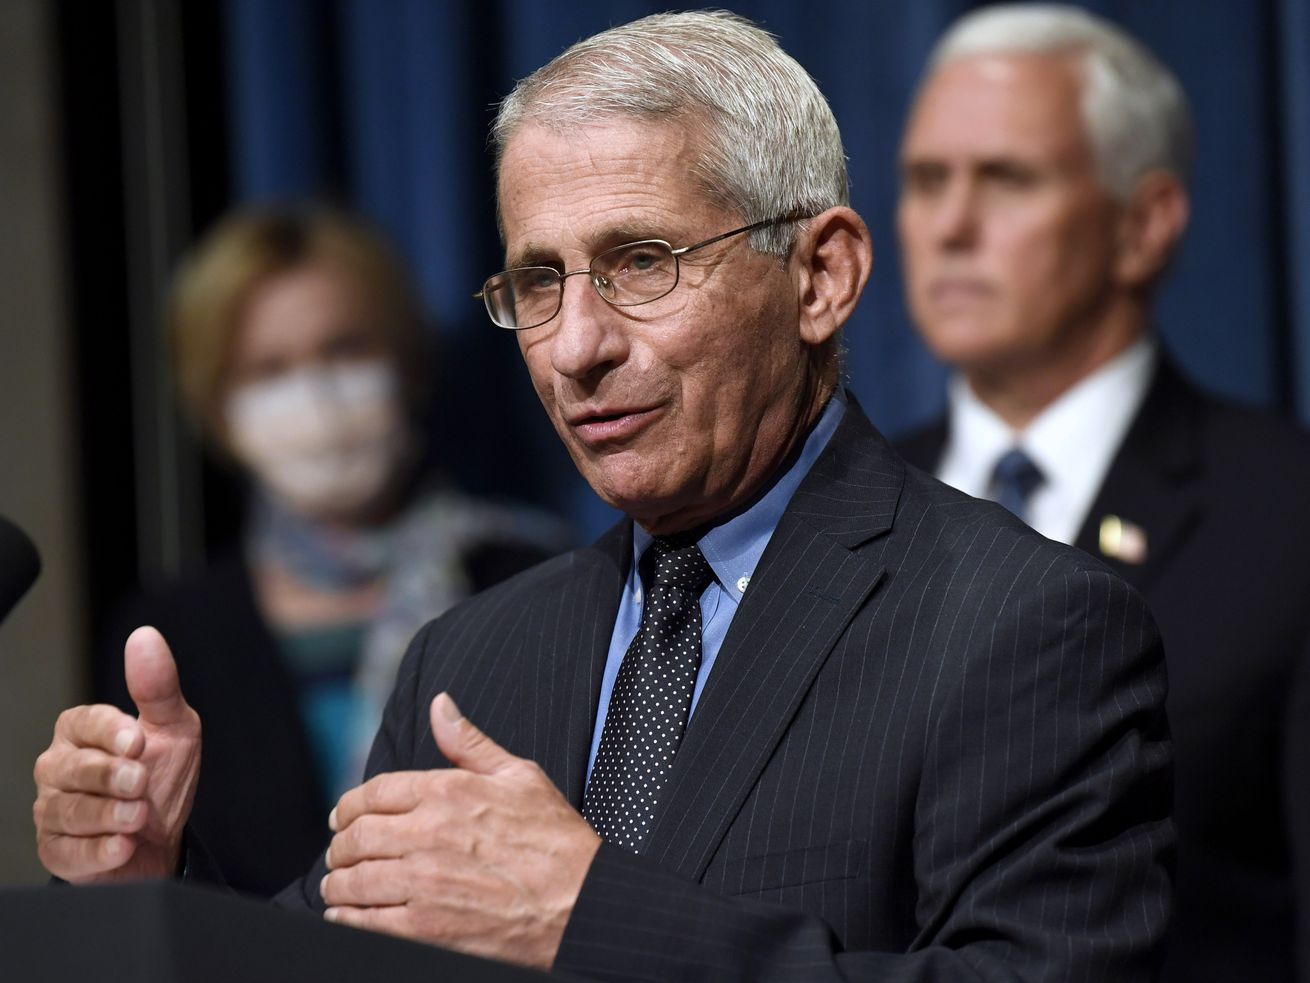 Anthony Fauci will throw ceremonial 1st pitch at Yankees-Nationals season opener in Washington